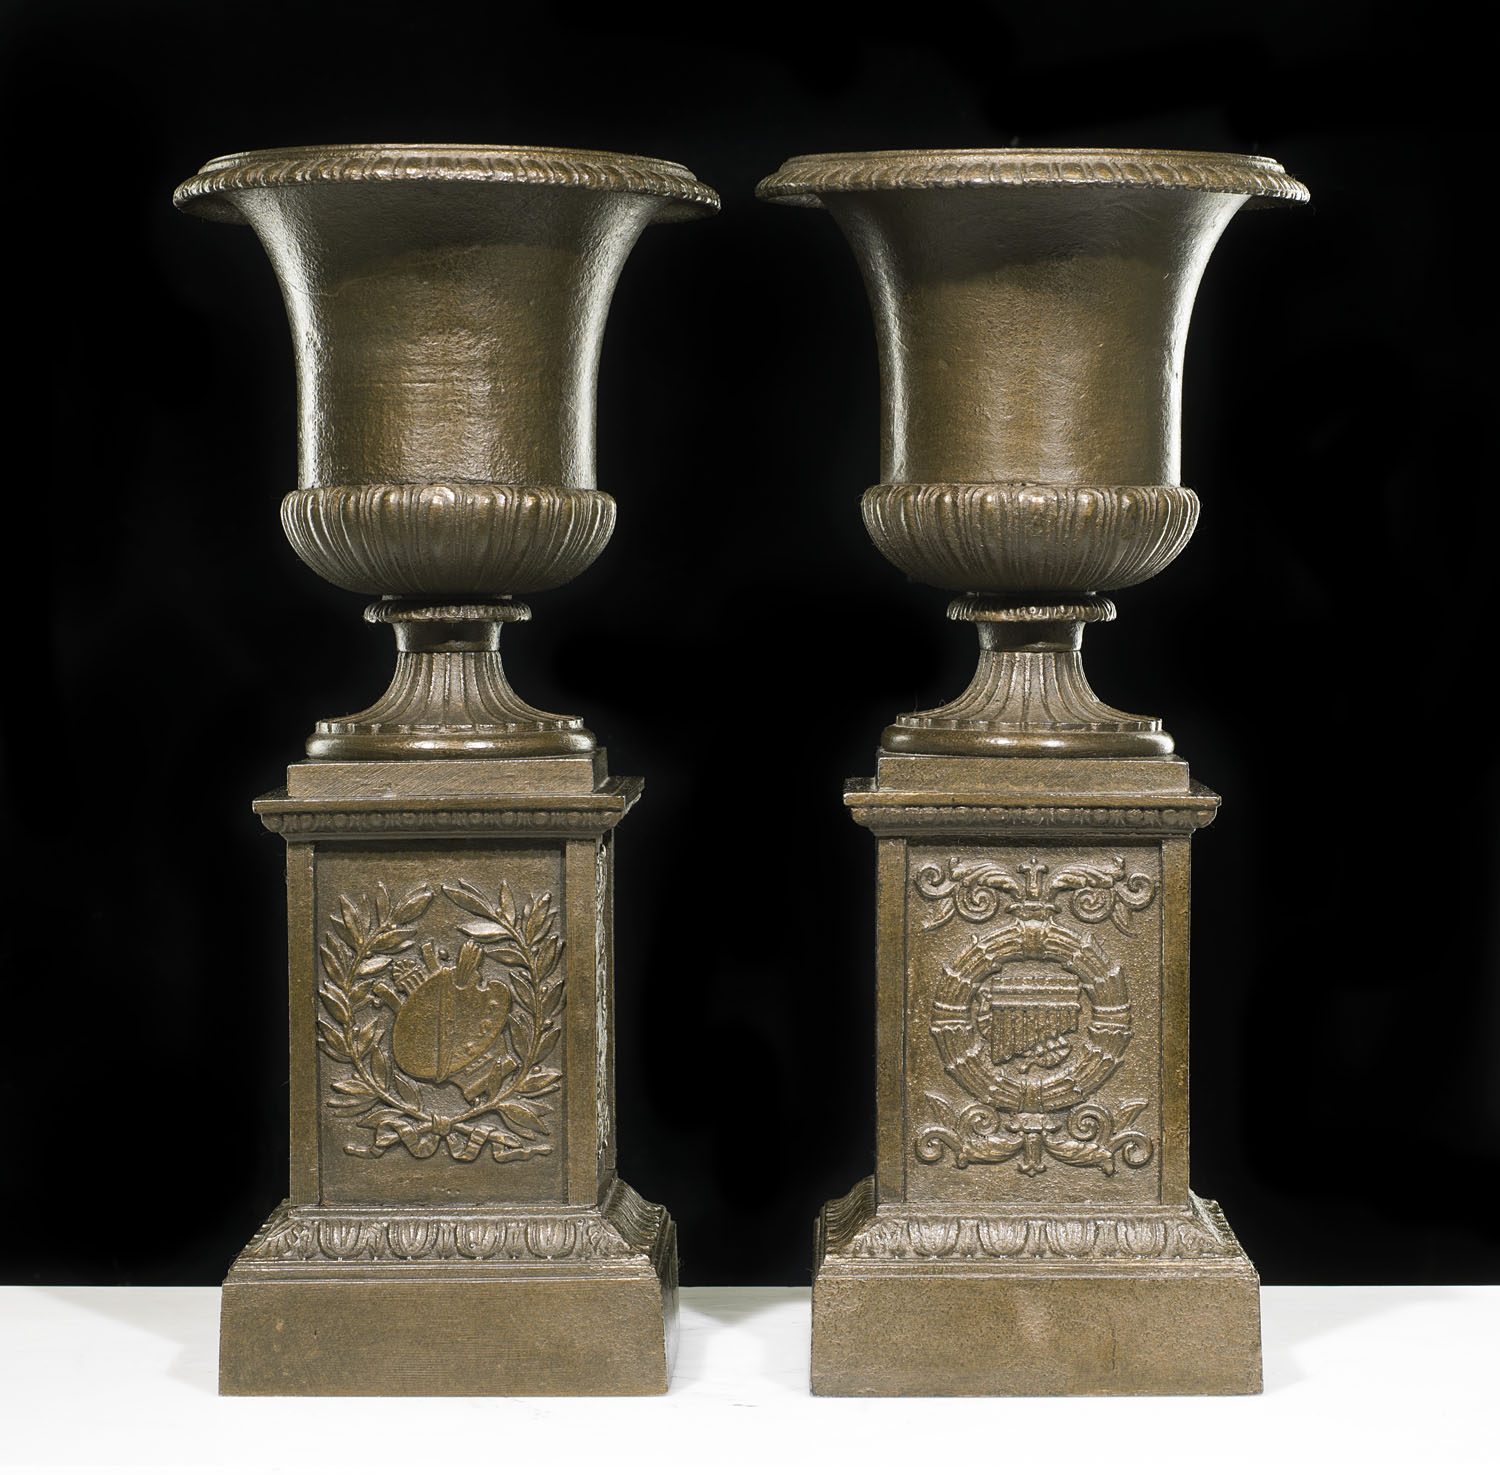 19th century pair of very small antique cast iron garden urns and plinths